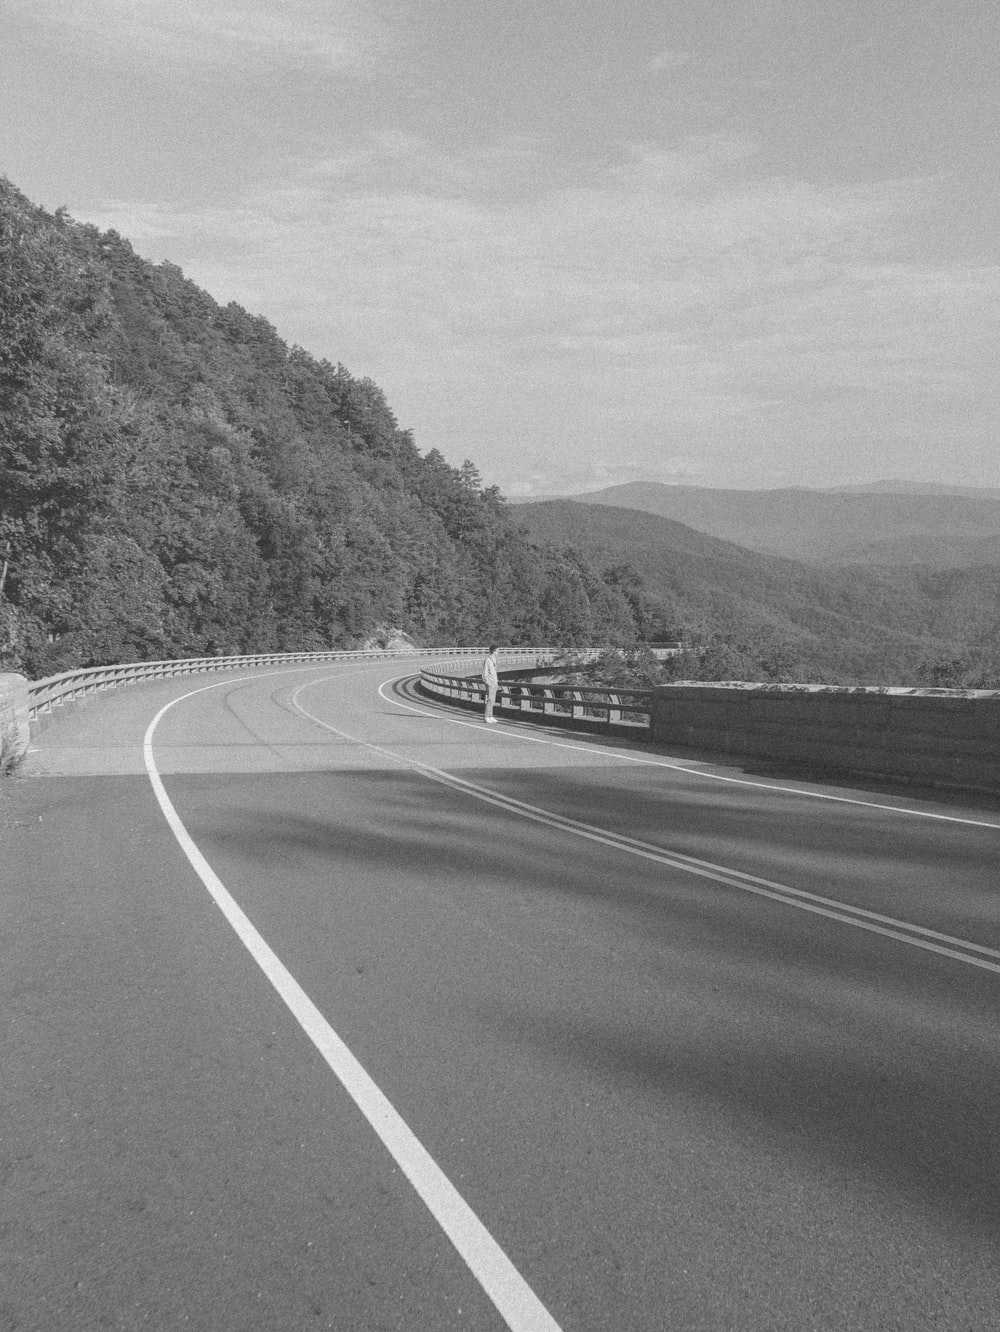 grayscale photo of road near mountain